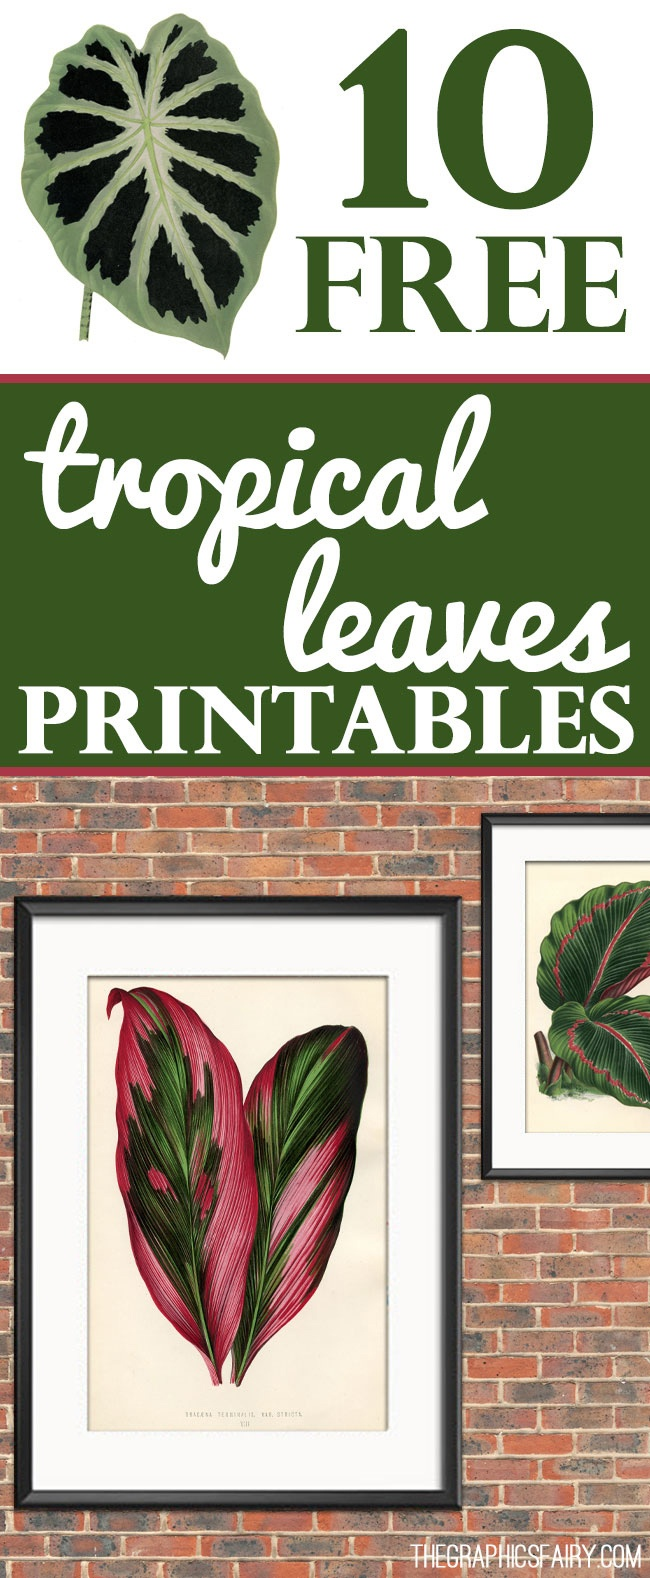 10 Free Tropical Leaves Printables - Instant Art Botanicals! - The - Free Printable Leaves